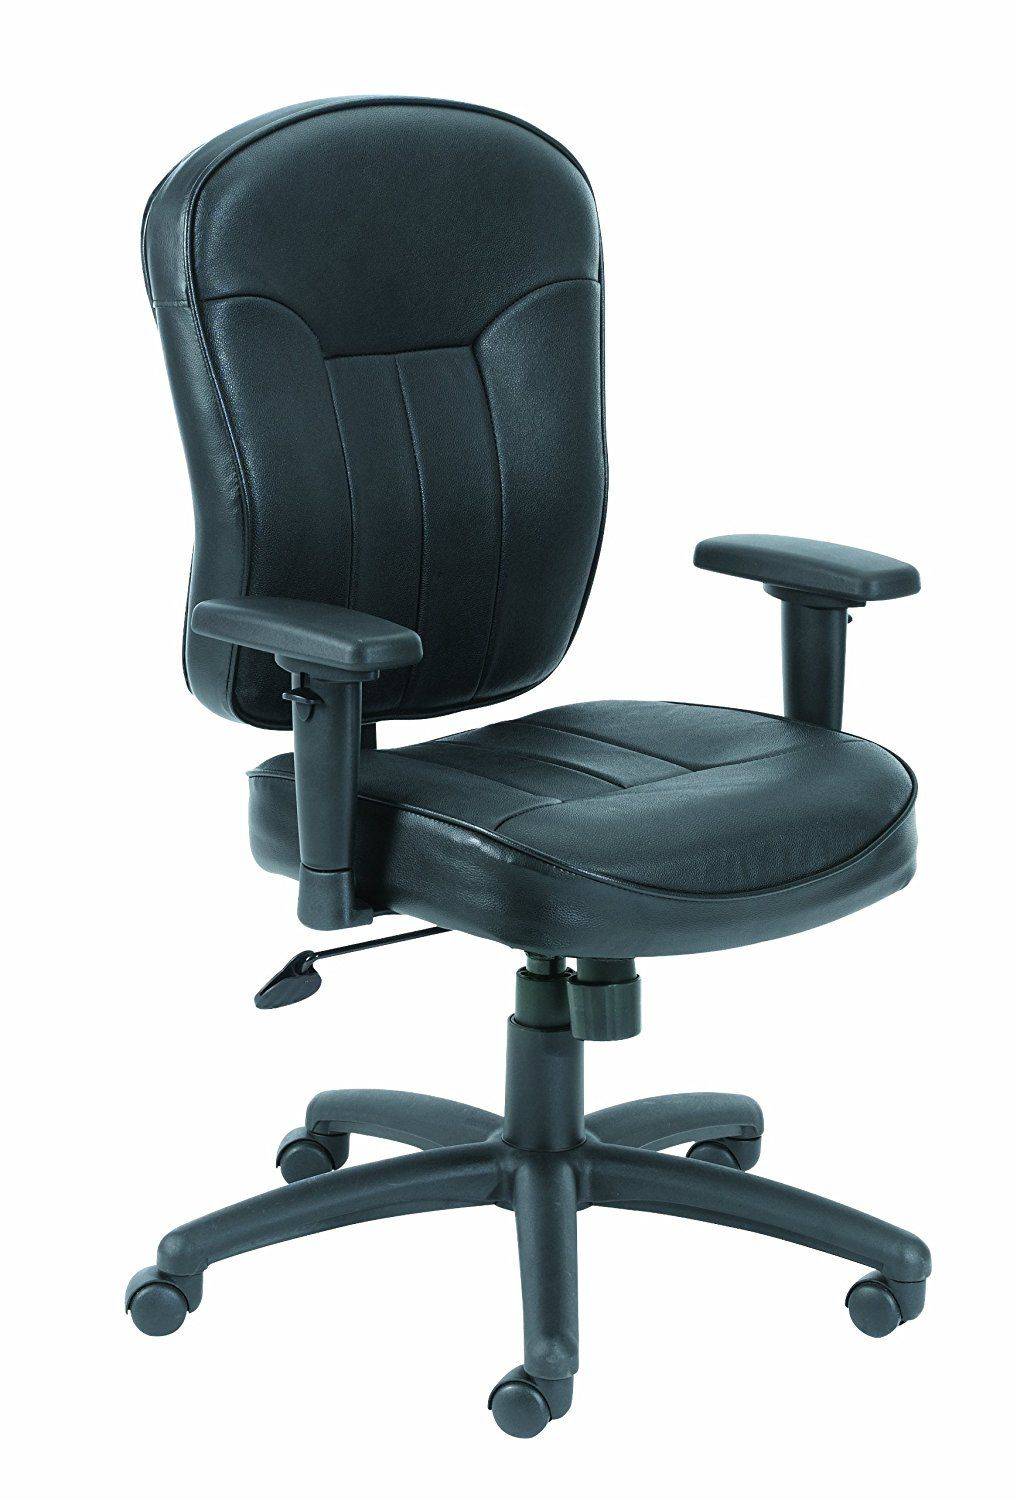 Office Chairs Without Arms Luxury Home Furniture Check More At Http